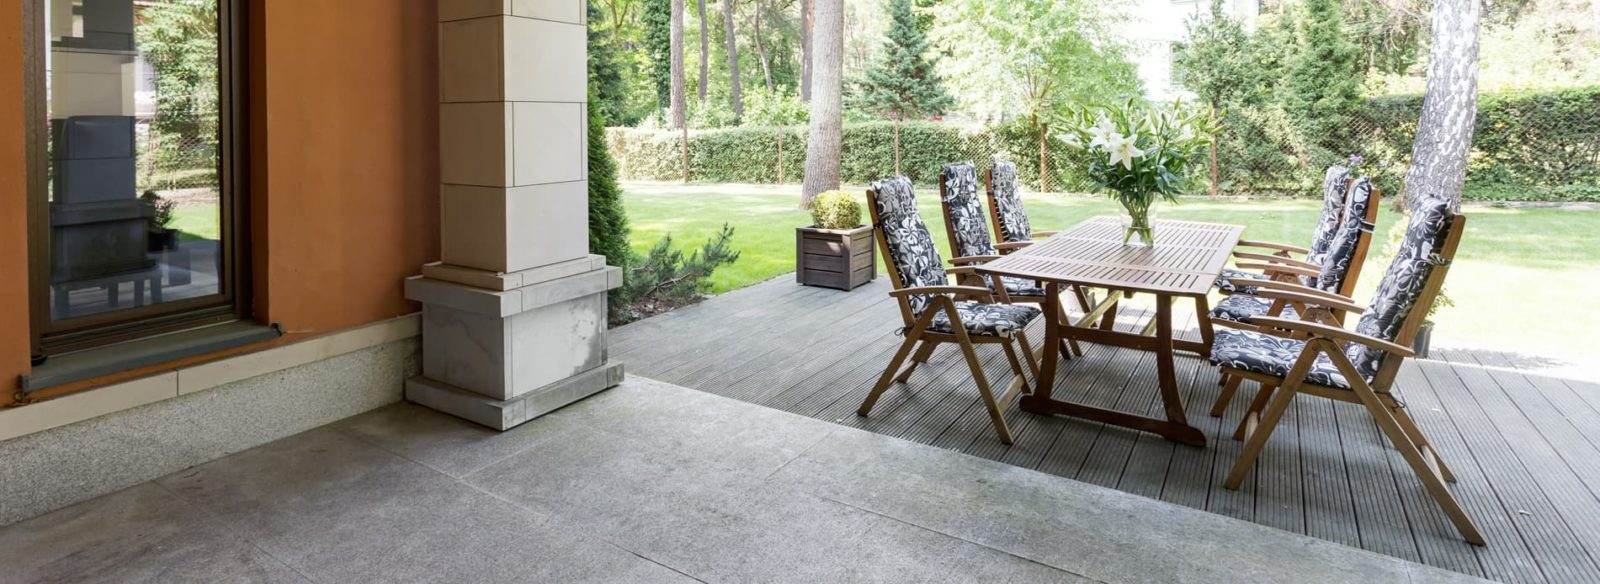 panoramic view of a garden patio with furniture